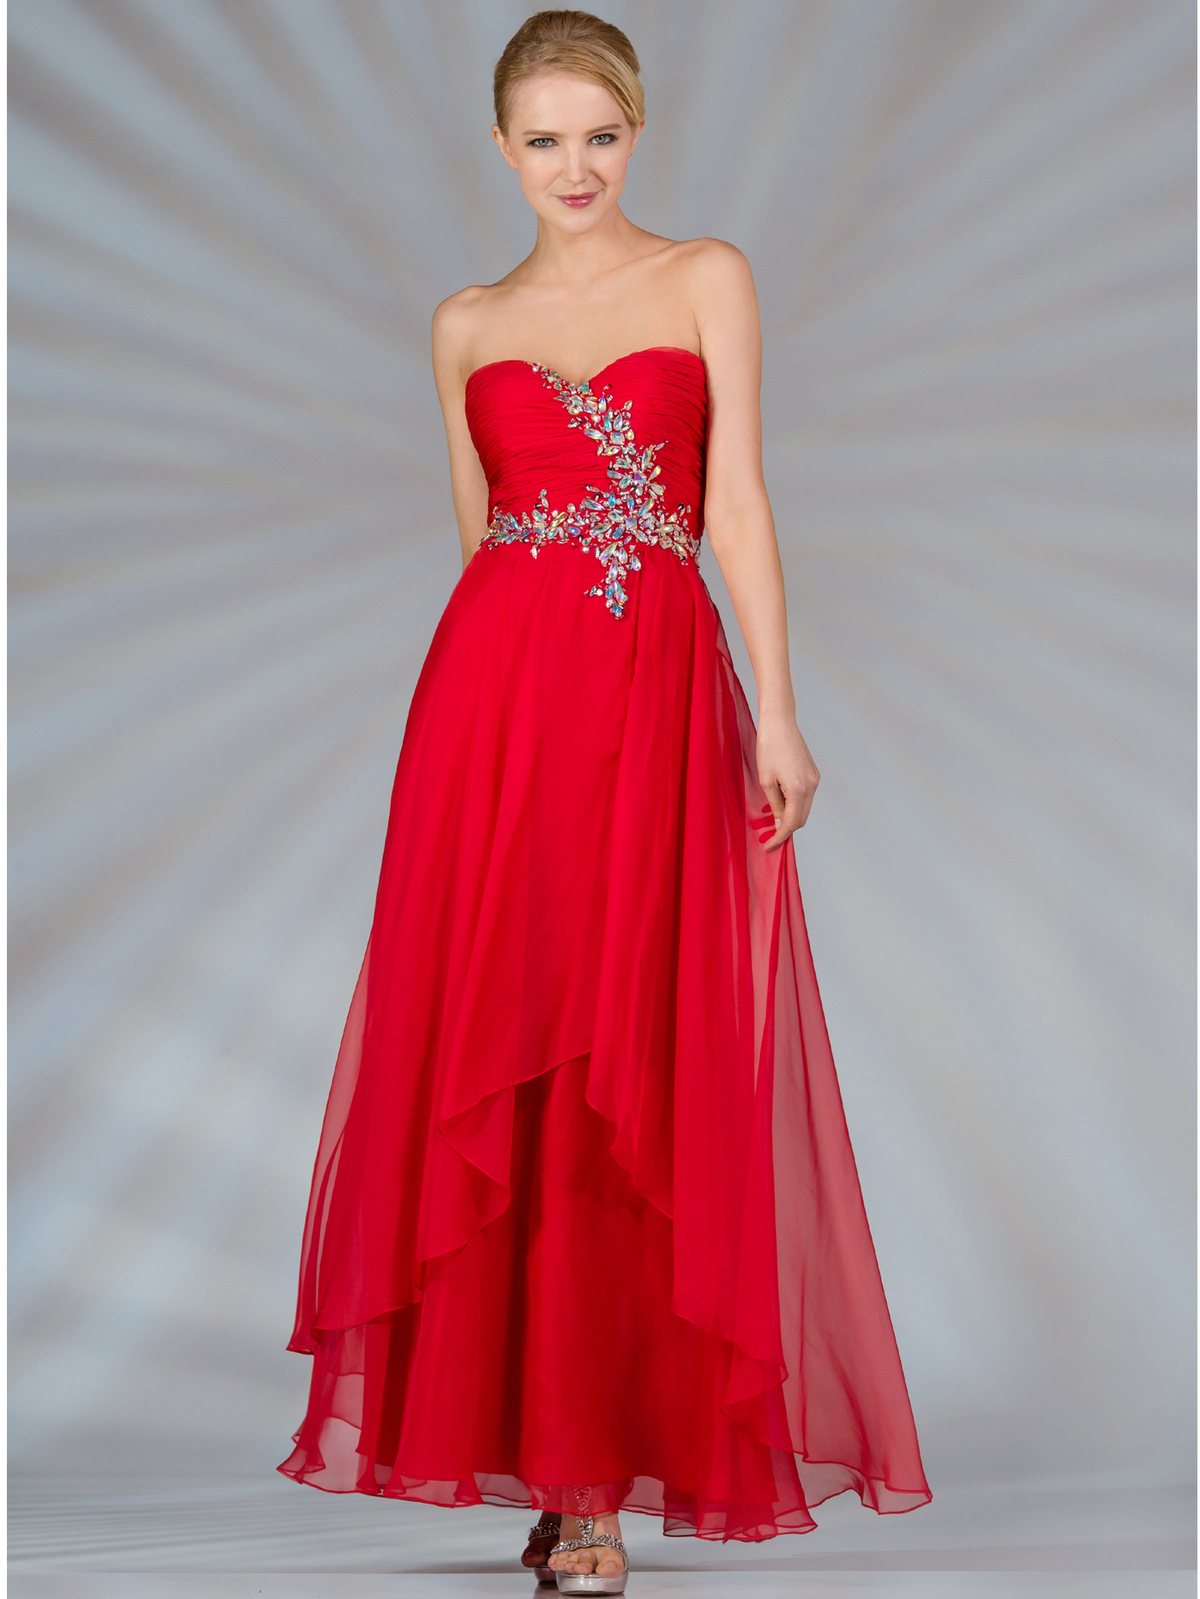 Plus size wedding dresses in los angeles ca cheap for Cheap wedding dresses in los angeles